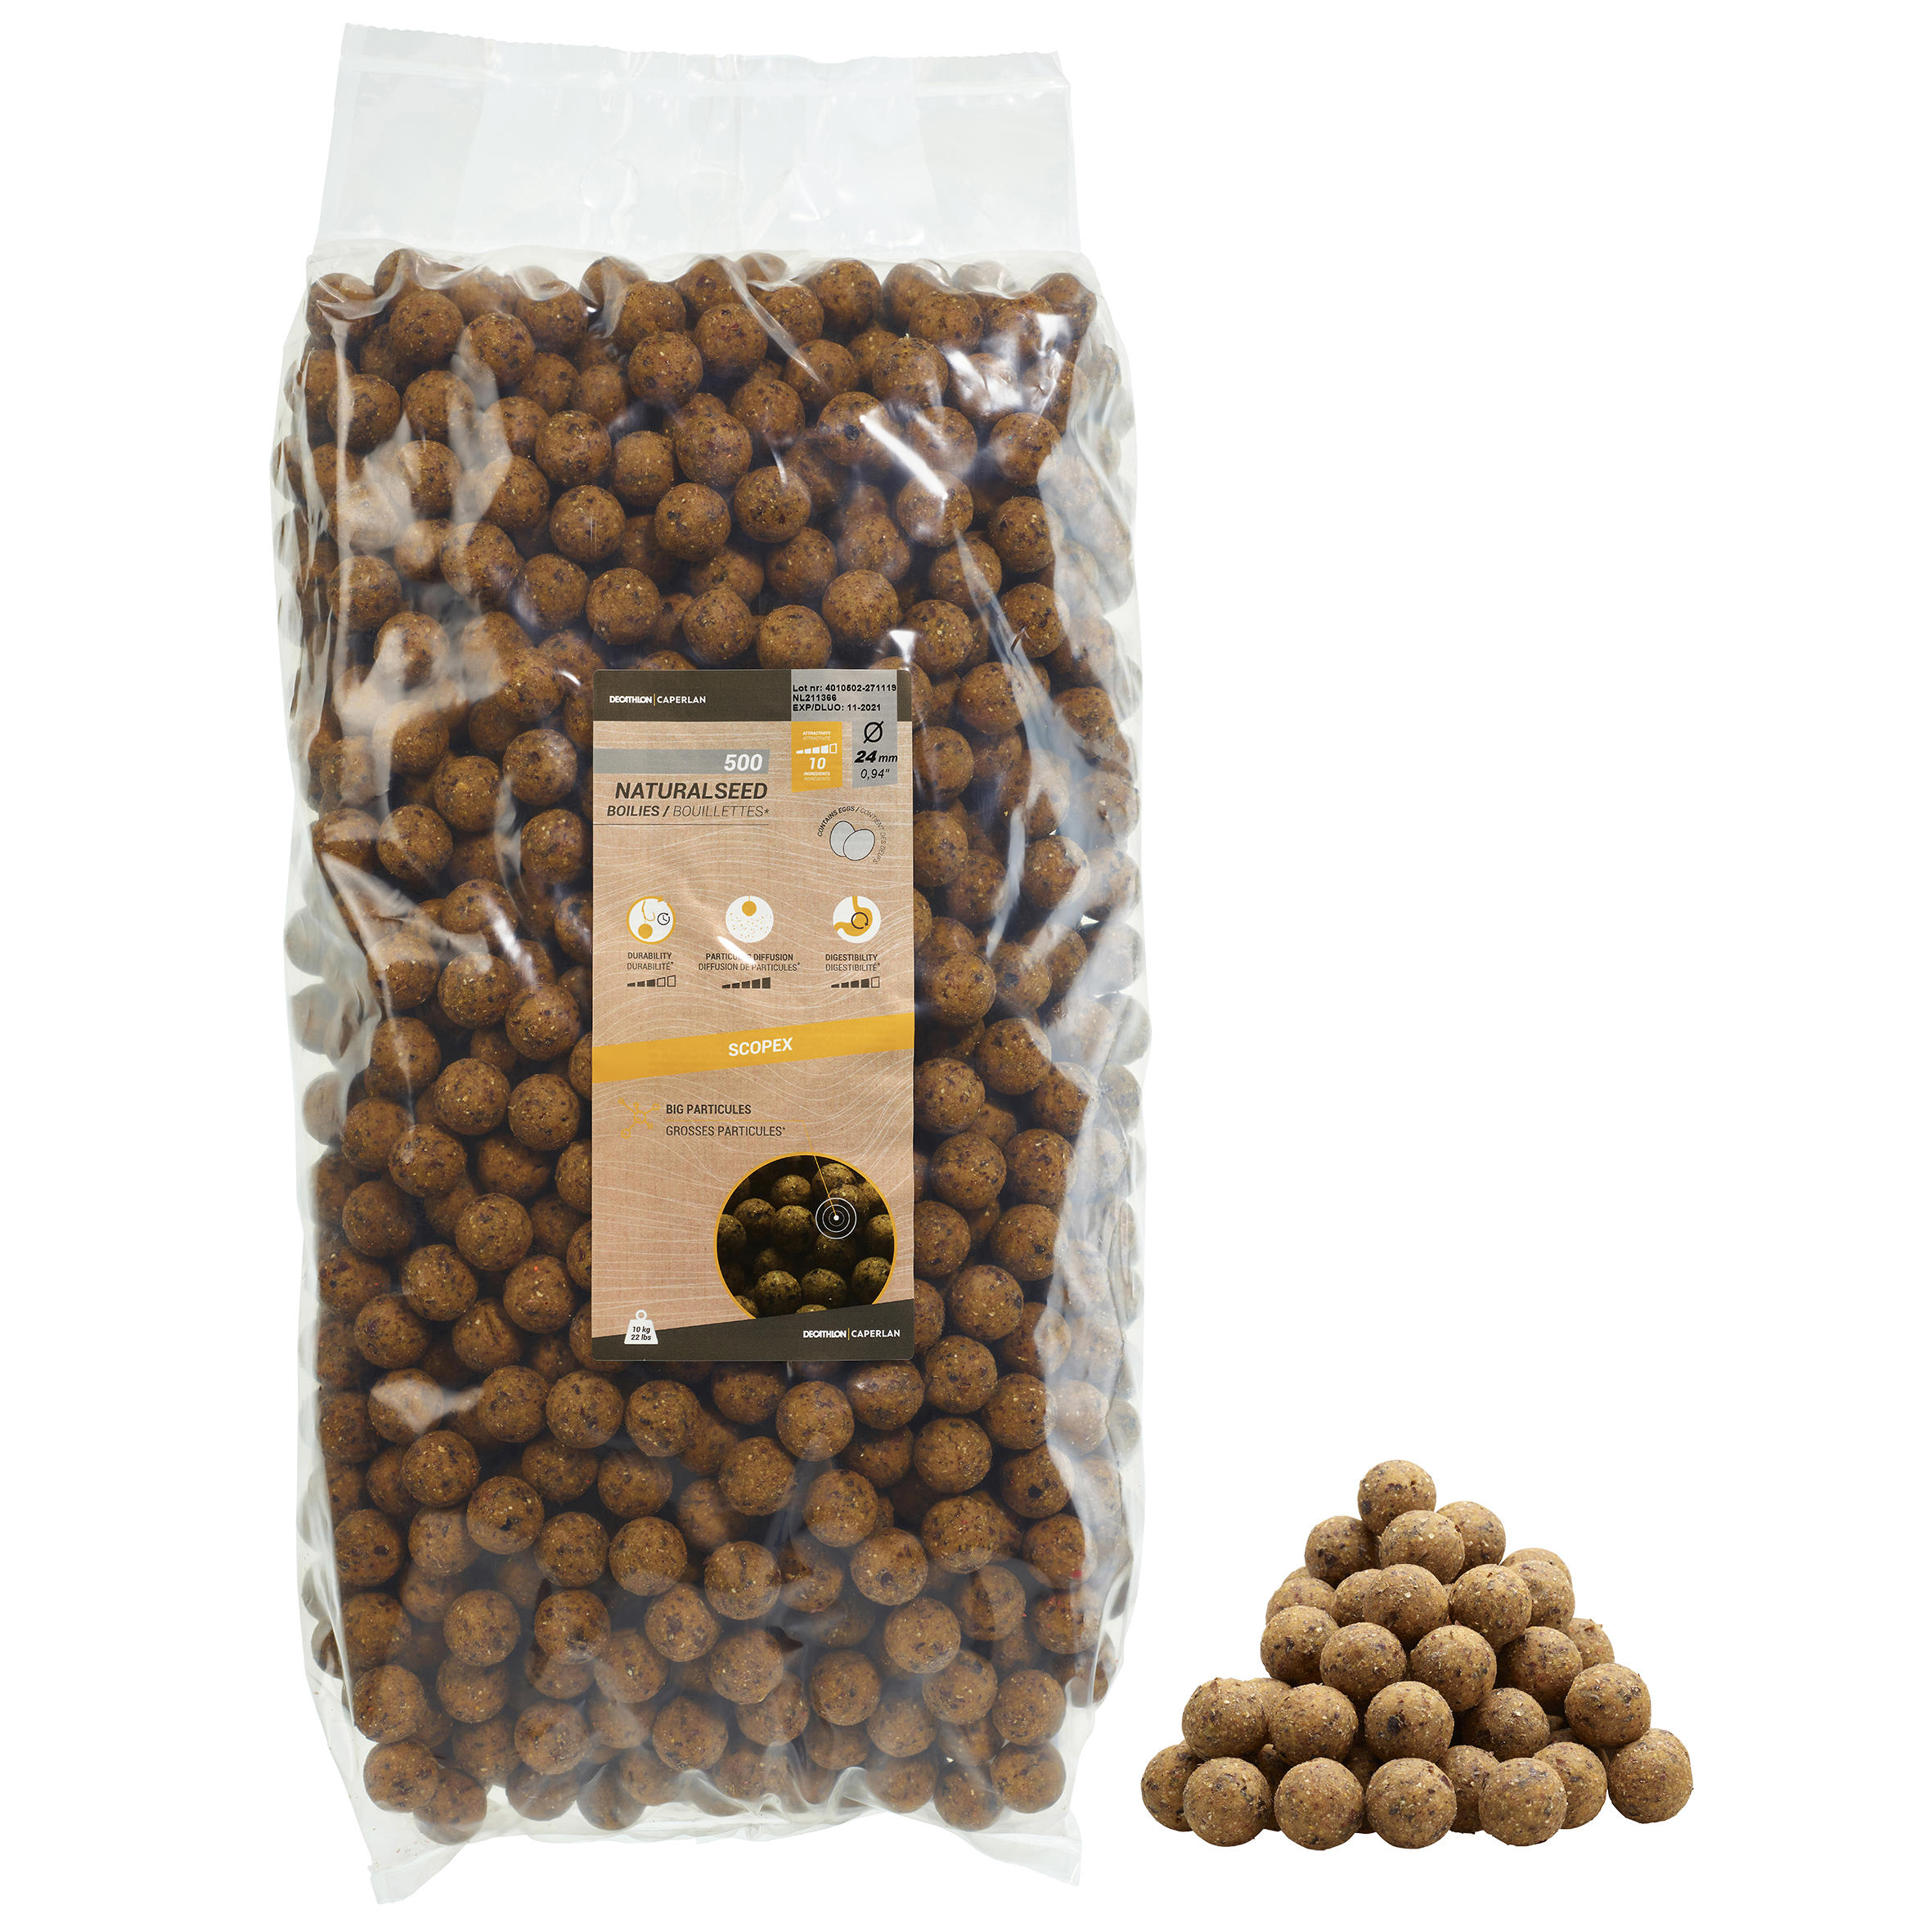 NATURALSEED 24mm 10kg Scopex